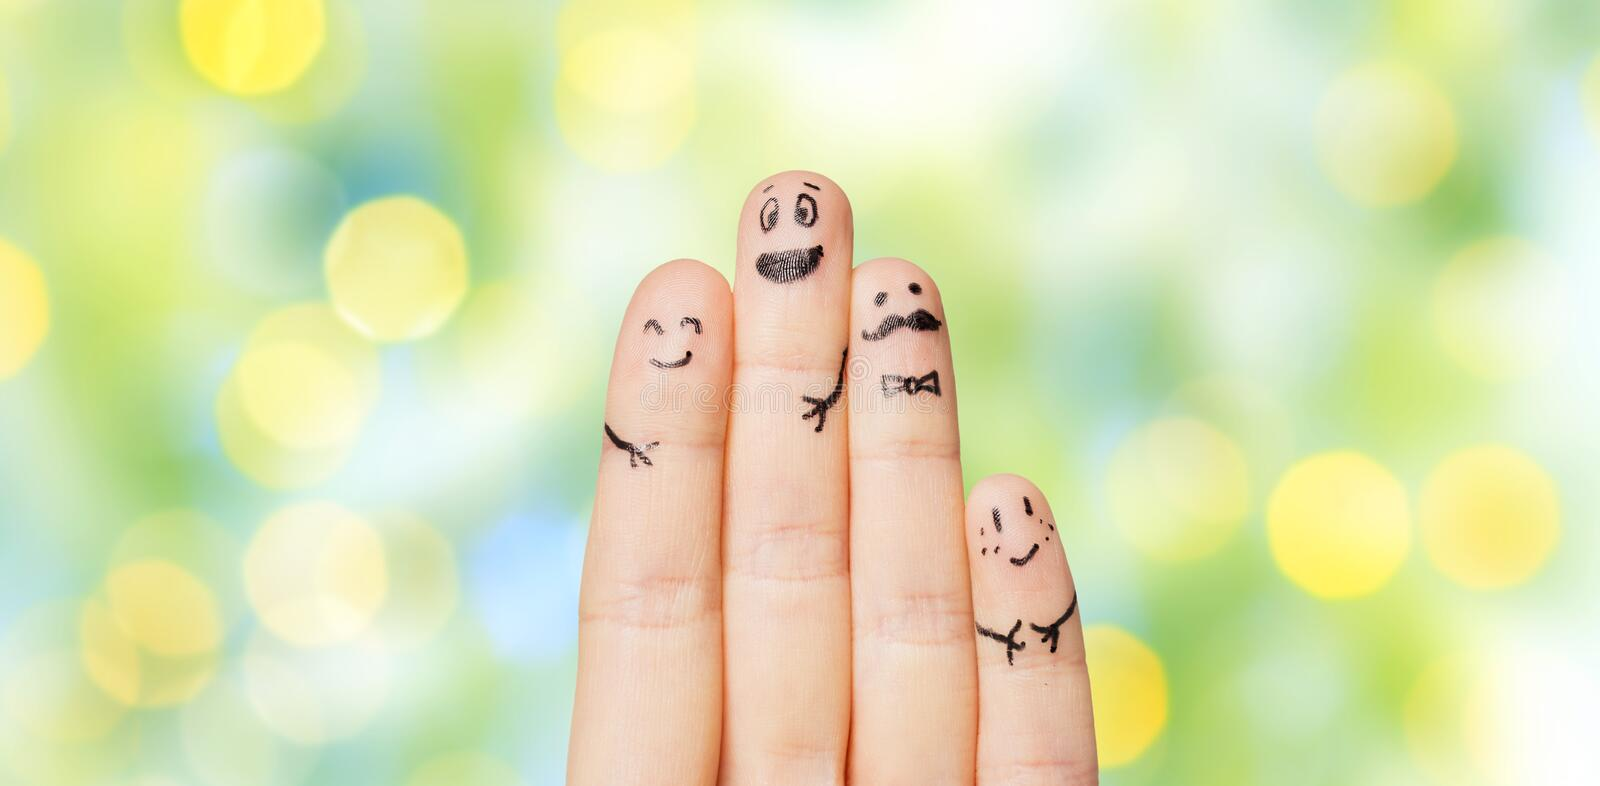 Close up of hands and fingers with smiley faces royalty free stock images